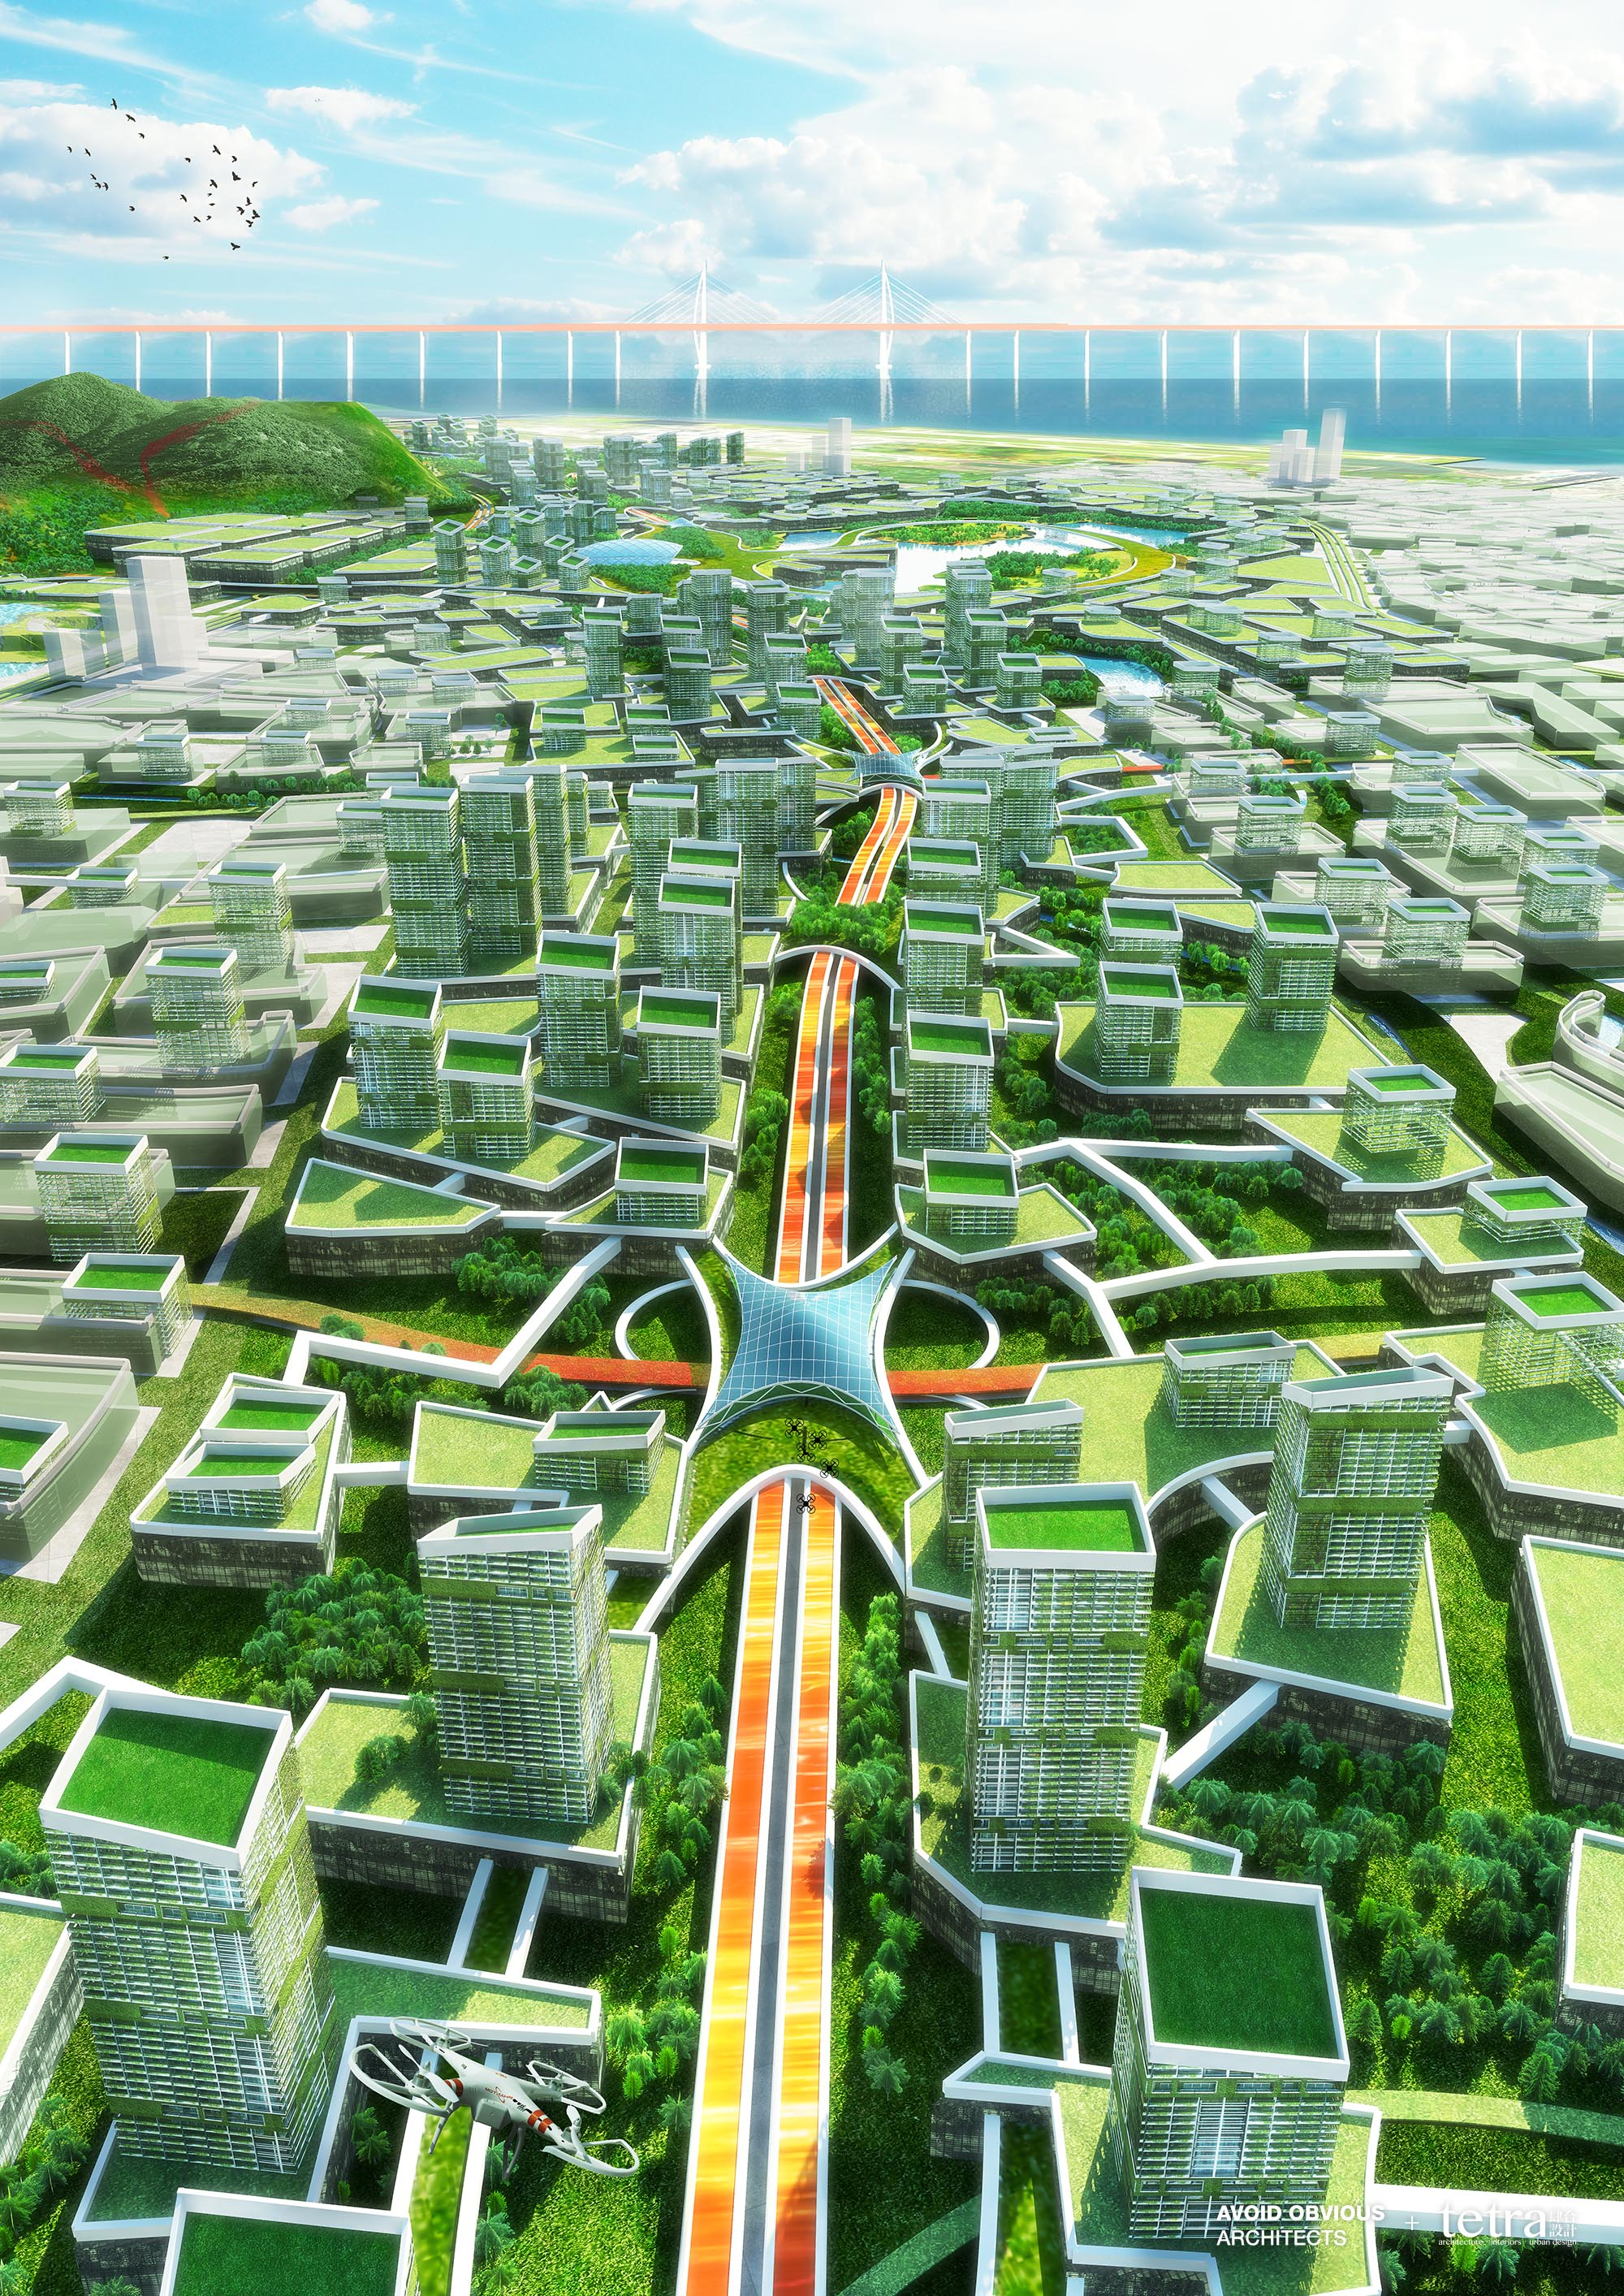 G107, Bao'an, Shenzhen, masterplan, city planning, sustainable, green, manufacturing, avoid obvious, tetra, architecture, planners, architects, aoarchitect, tetra-arch, connections, drone, highway, future, futuristic, carbon zero, carbon neutral, china, hong kong, pearl river delta, Baoan, autopilot, driverless, high speed, transit, multimodal, connections, sharing economy, co-working, shared, amenities, natural, nature, road, infrastructure, water cycle, water management, landscape, design, branding, engineering, marketing, drone-view, aerial, airport